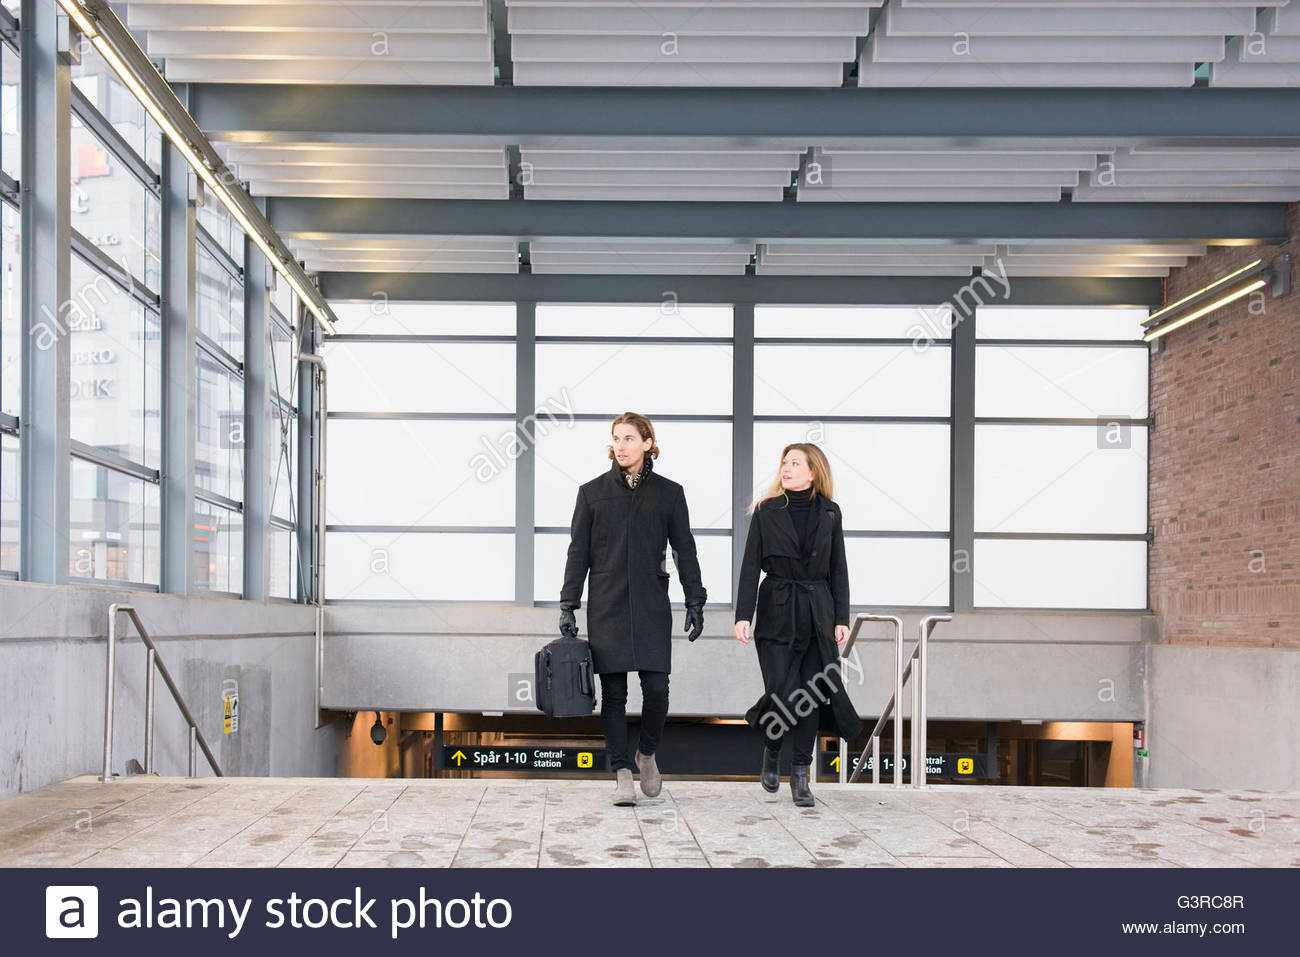 Sweden, Skane, Malmo, Front view of couple leaving subway station - Stock Image